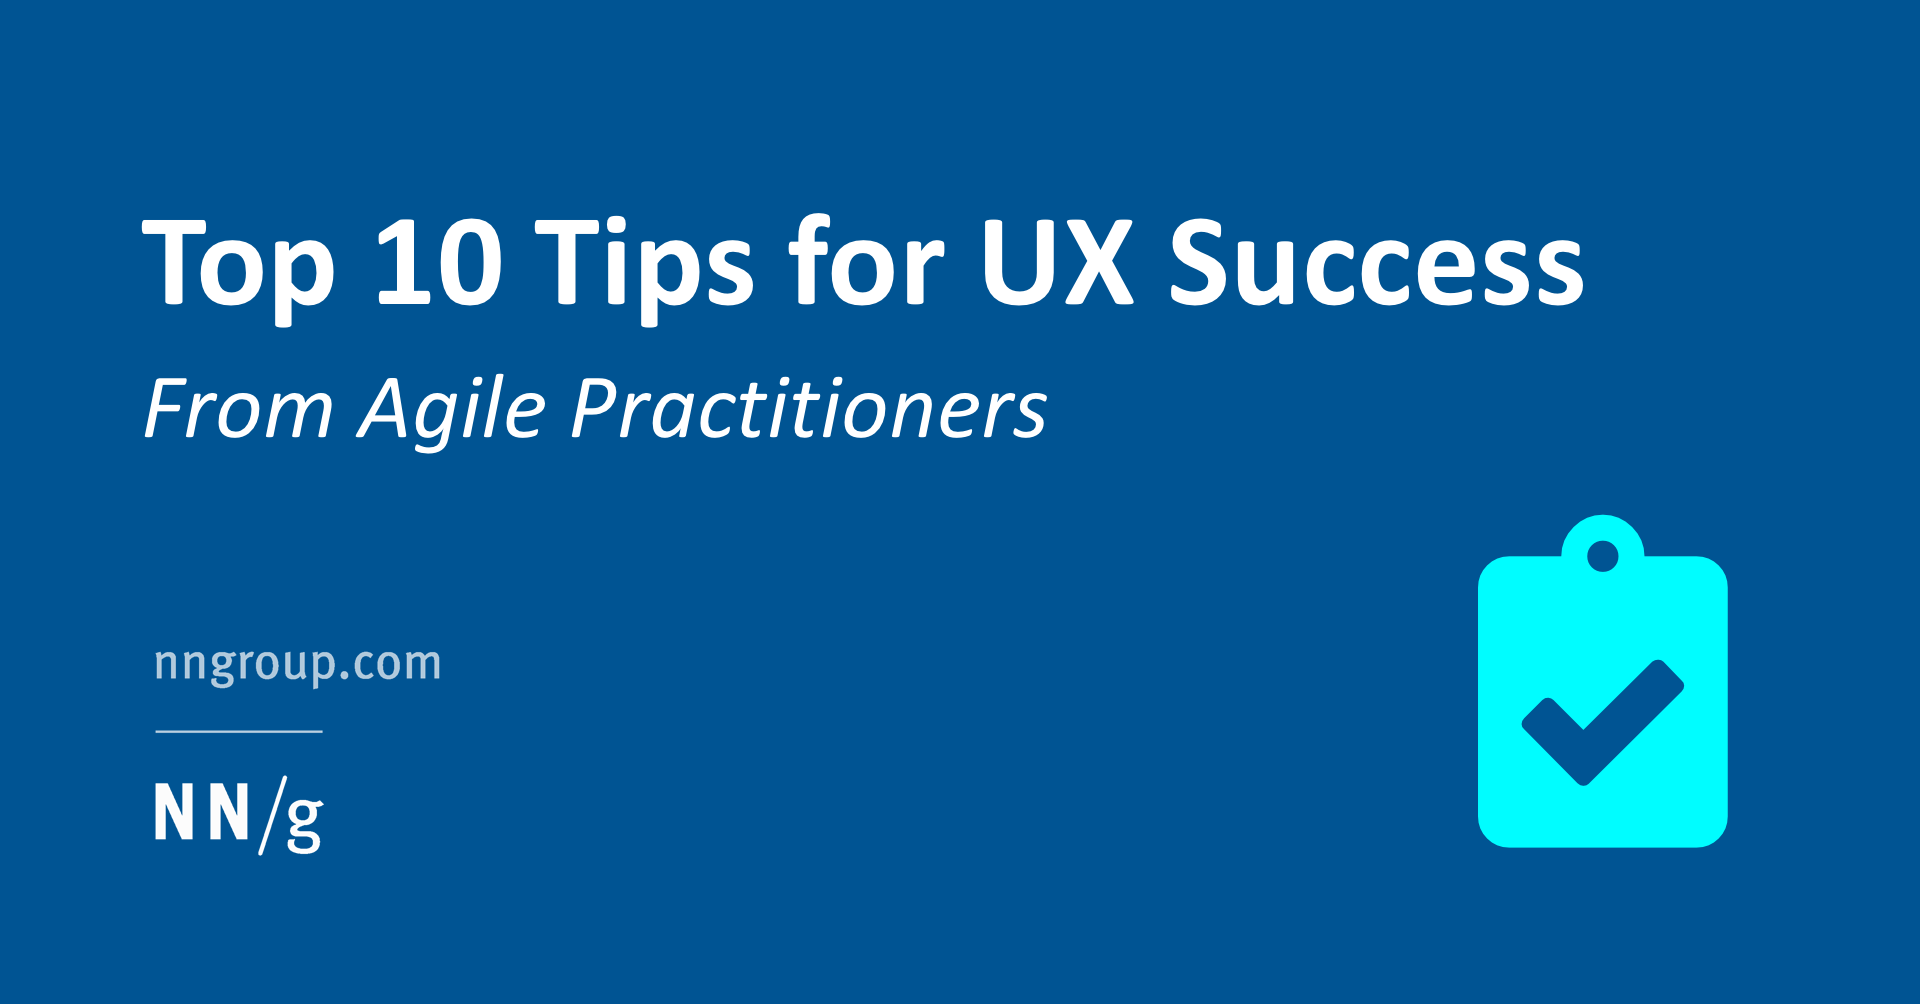 Top 10 Tips For Ux Success From Agile Practitioners